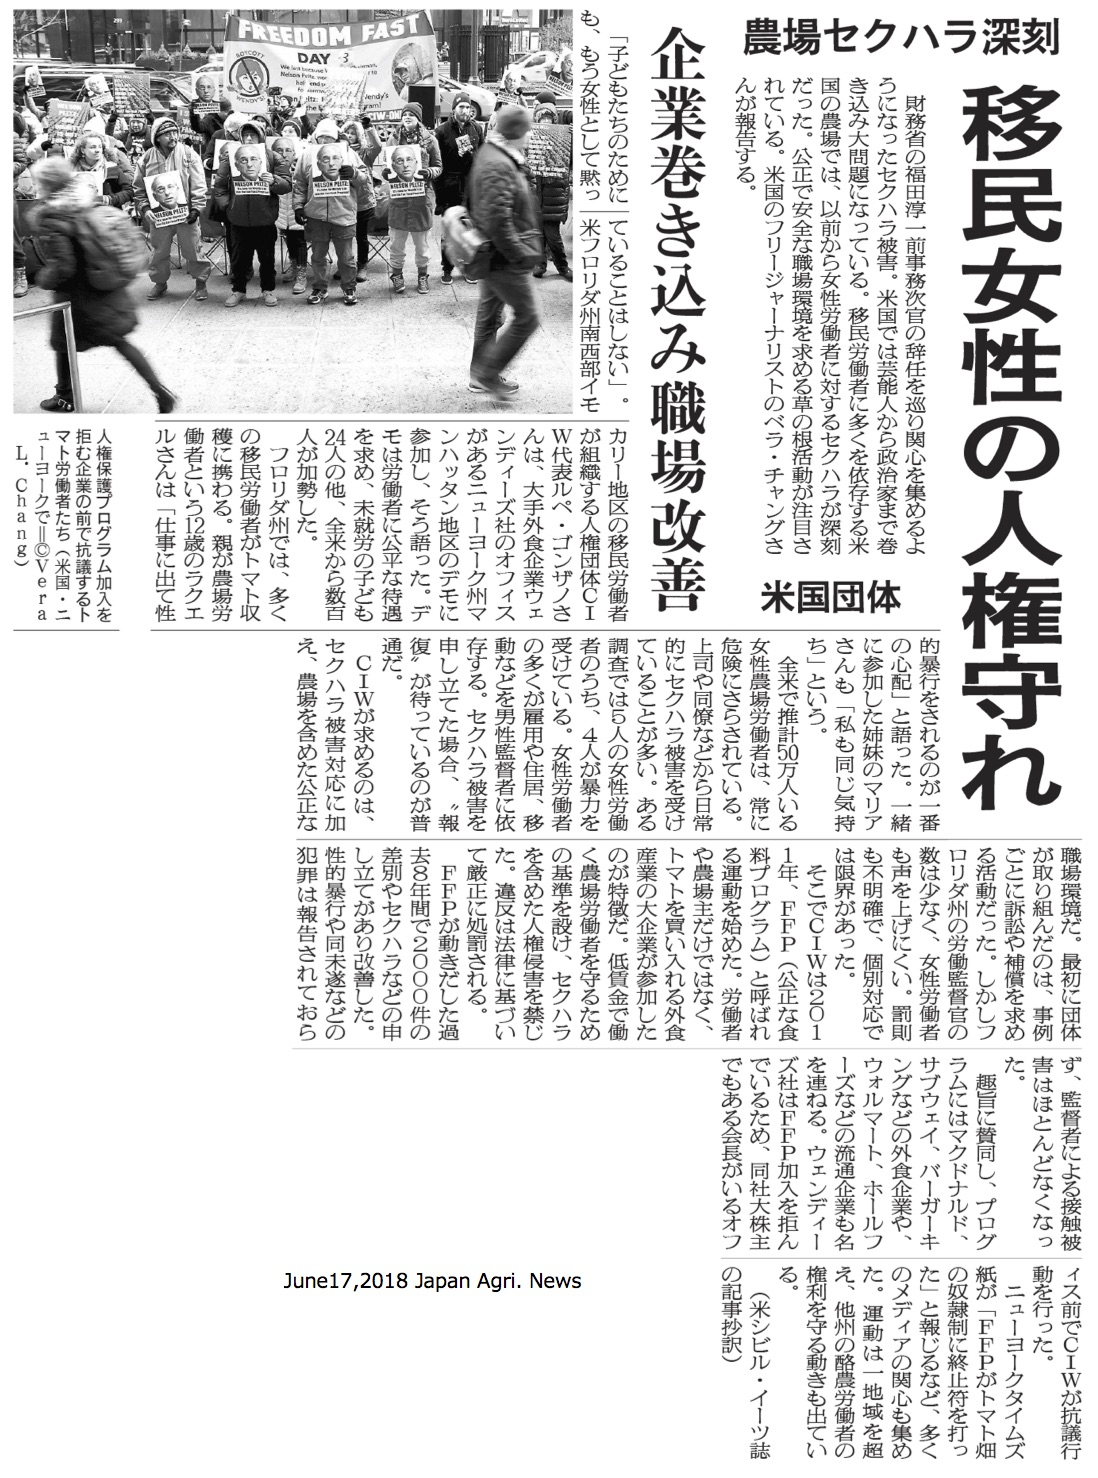 My   Civil Eats  story  about farmworker women survivors and their #MeToo fight translated and abridged for  Japan Agricultural News,  distributed to 400,000 farmers across Japan.